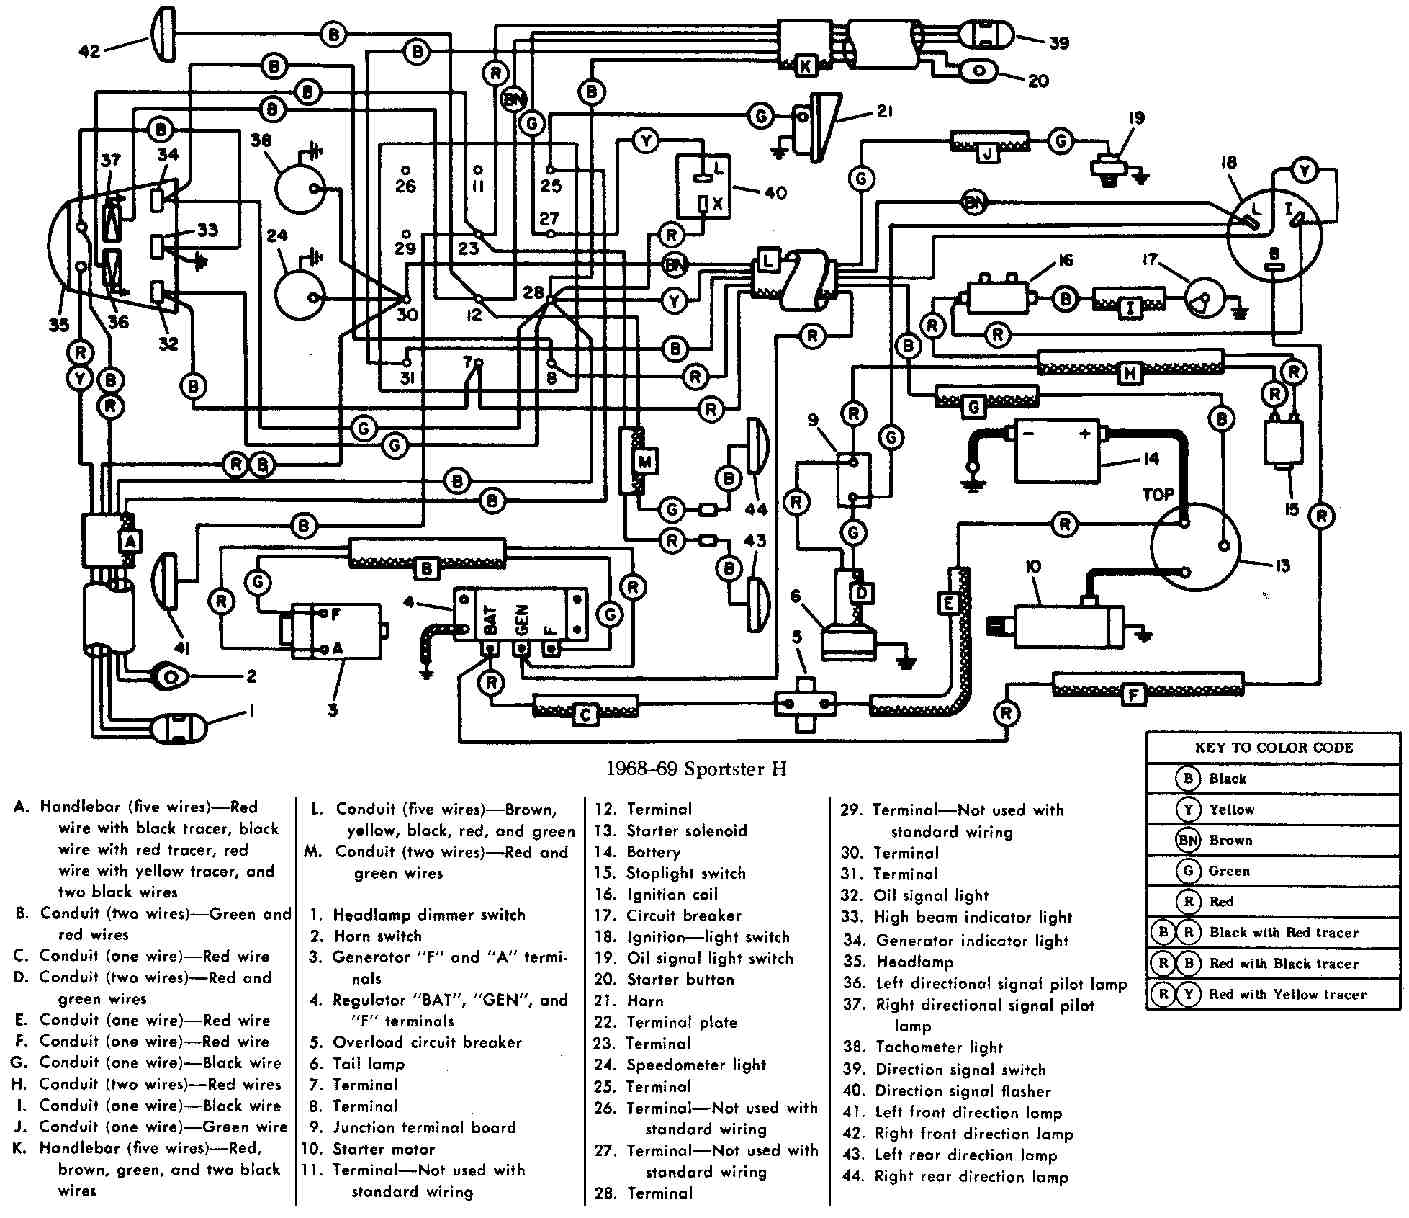 Wiring Diagram For 2000 Harley Davidson Road King : Harley davidson sportster  electrical wiring